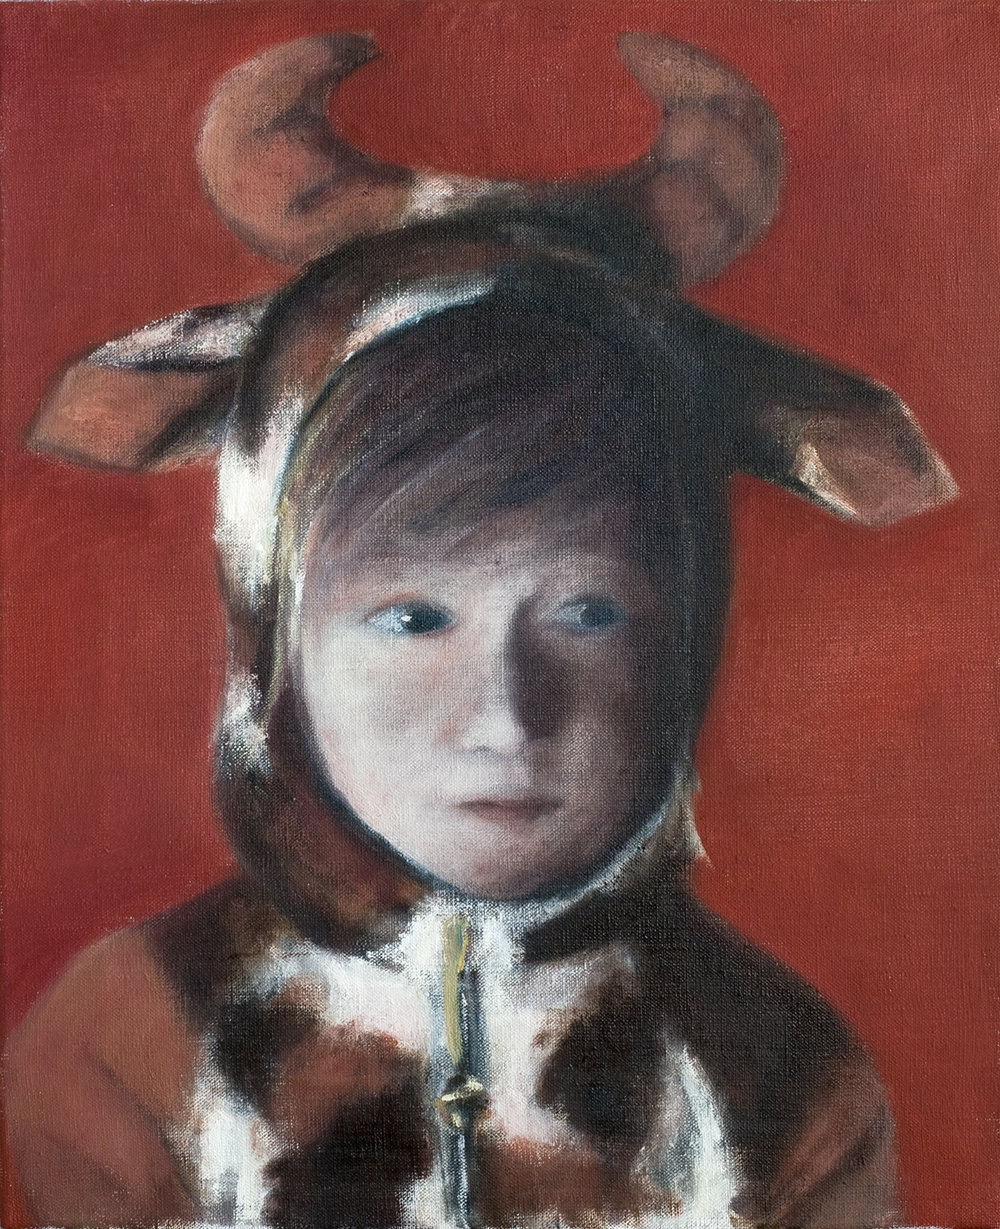 Girl with cow costume  Oil on canvas 46x38 cm 2008